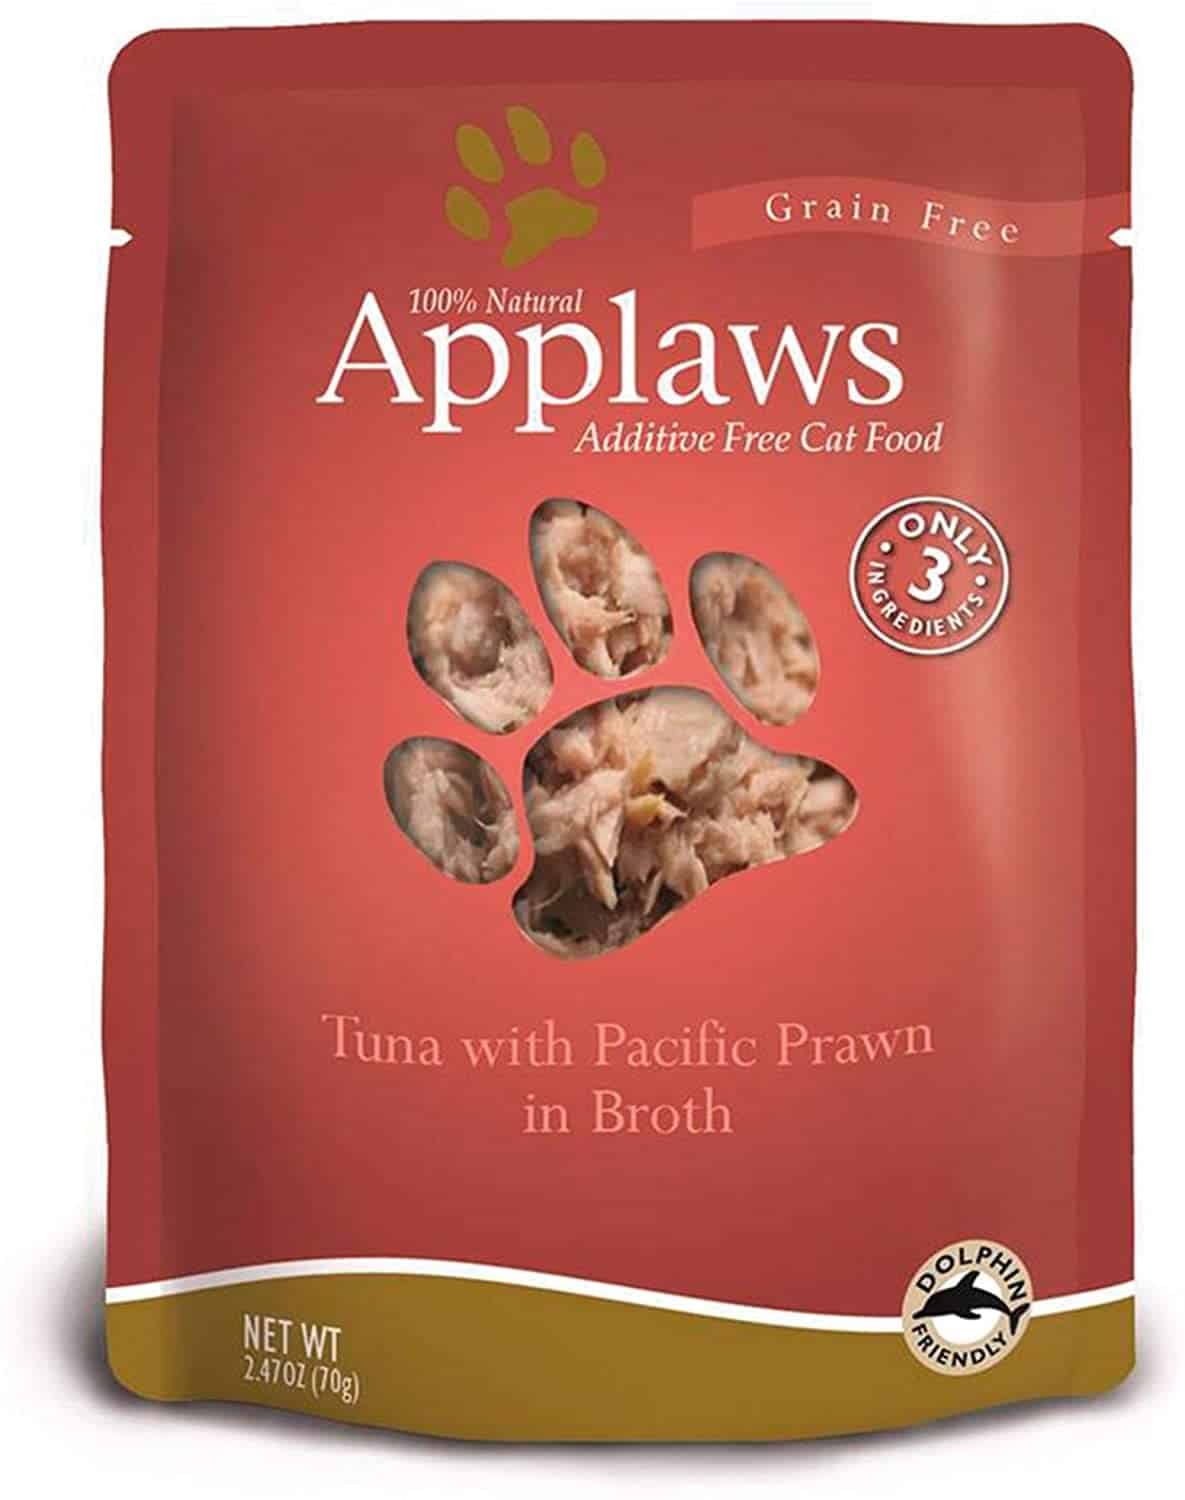 2020 Applaws Cat Food Reviews: Naturally Nutritious Cat Food 6